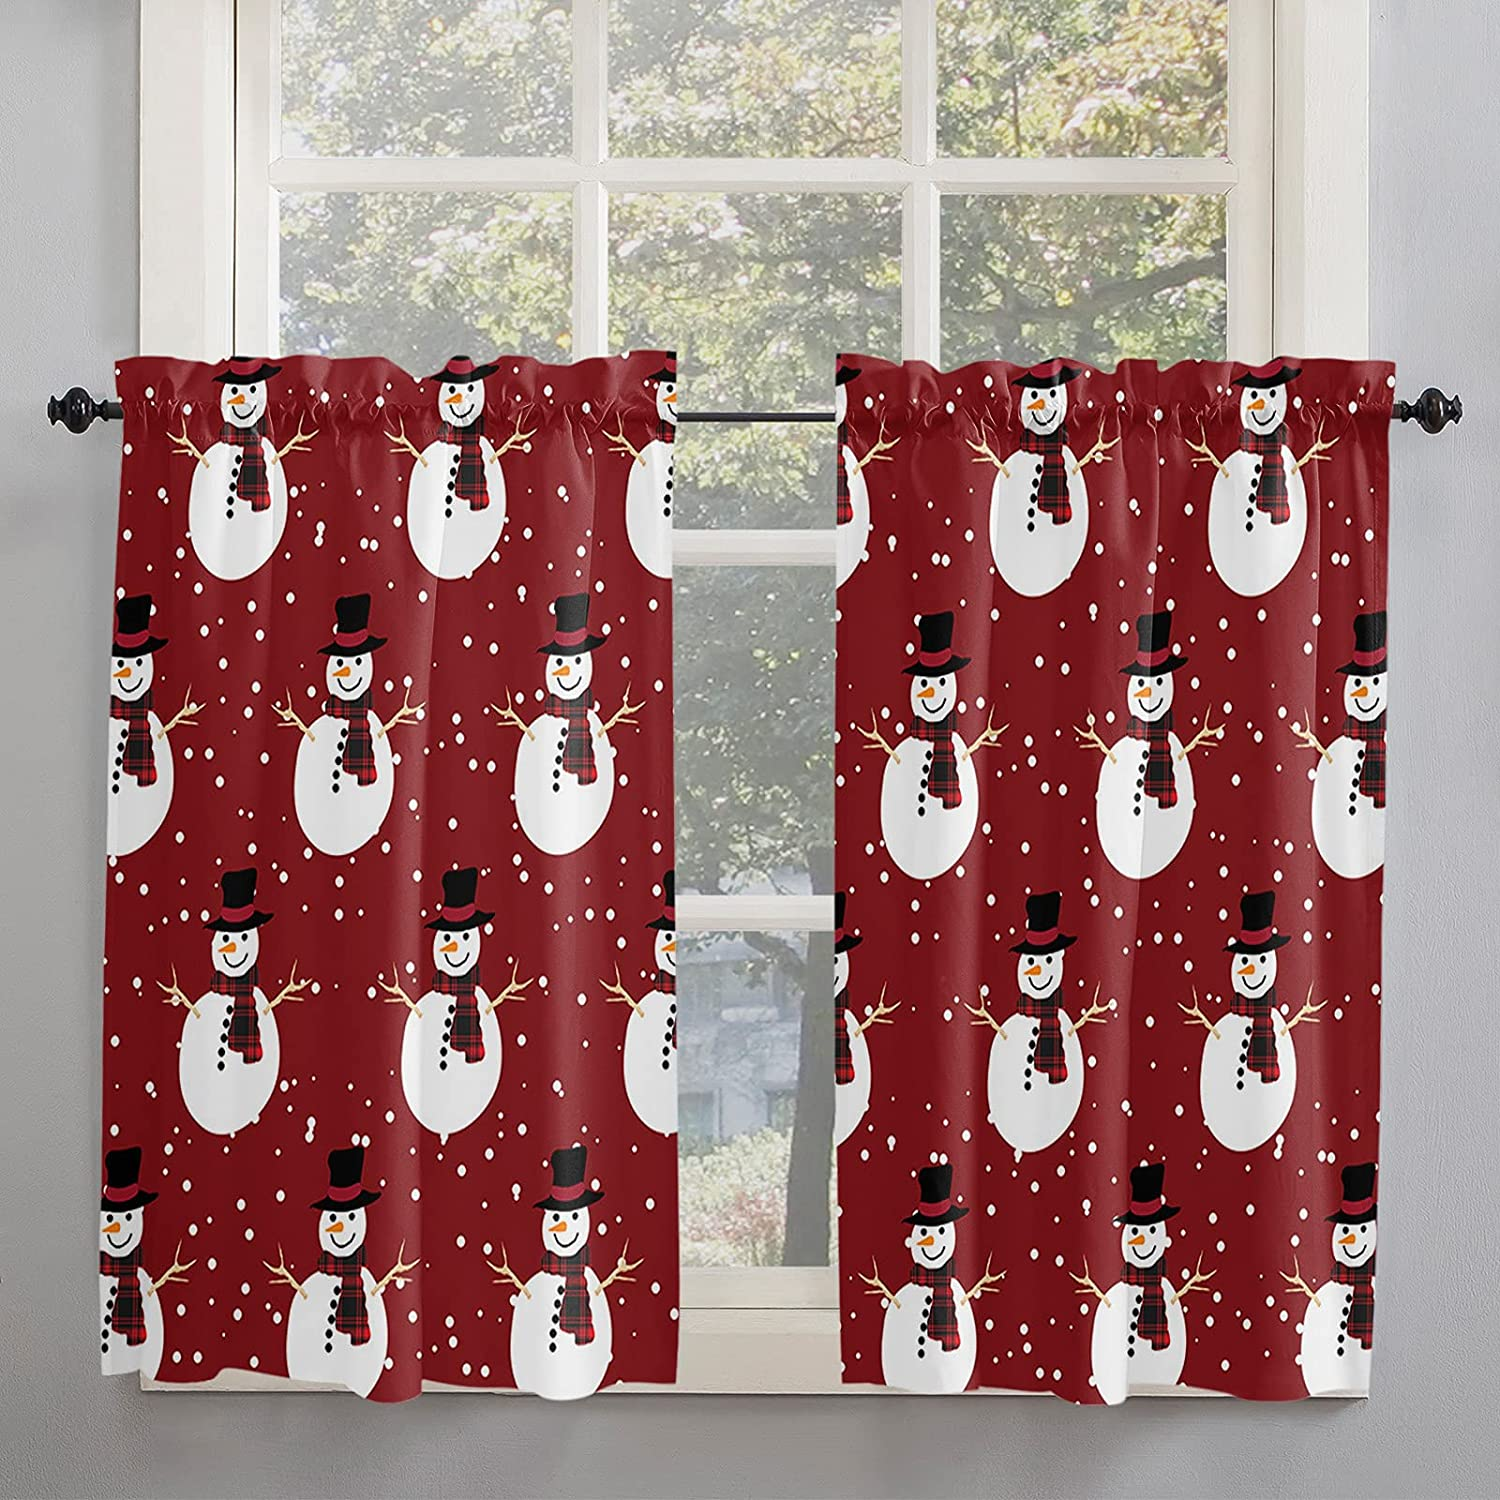 Christmas Kitchen wholesale Curtains 45 Inch Funny for Sno 40% OFF Cheap Sale Windows Length